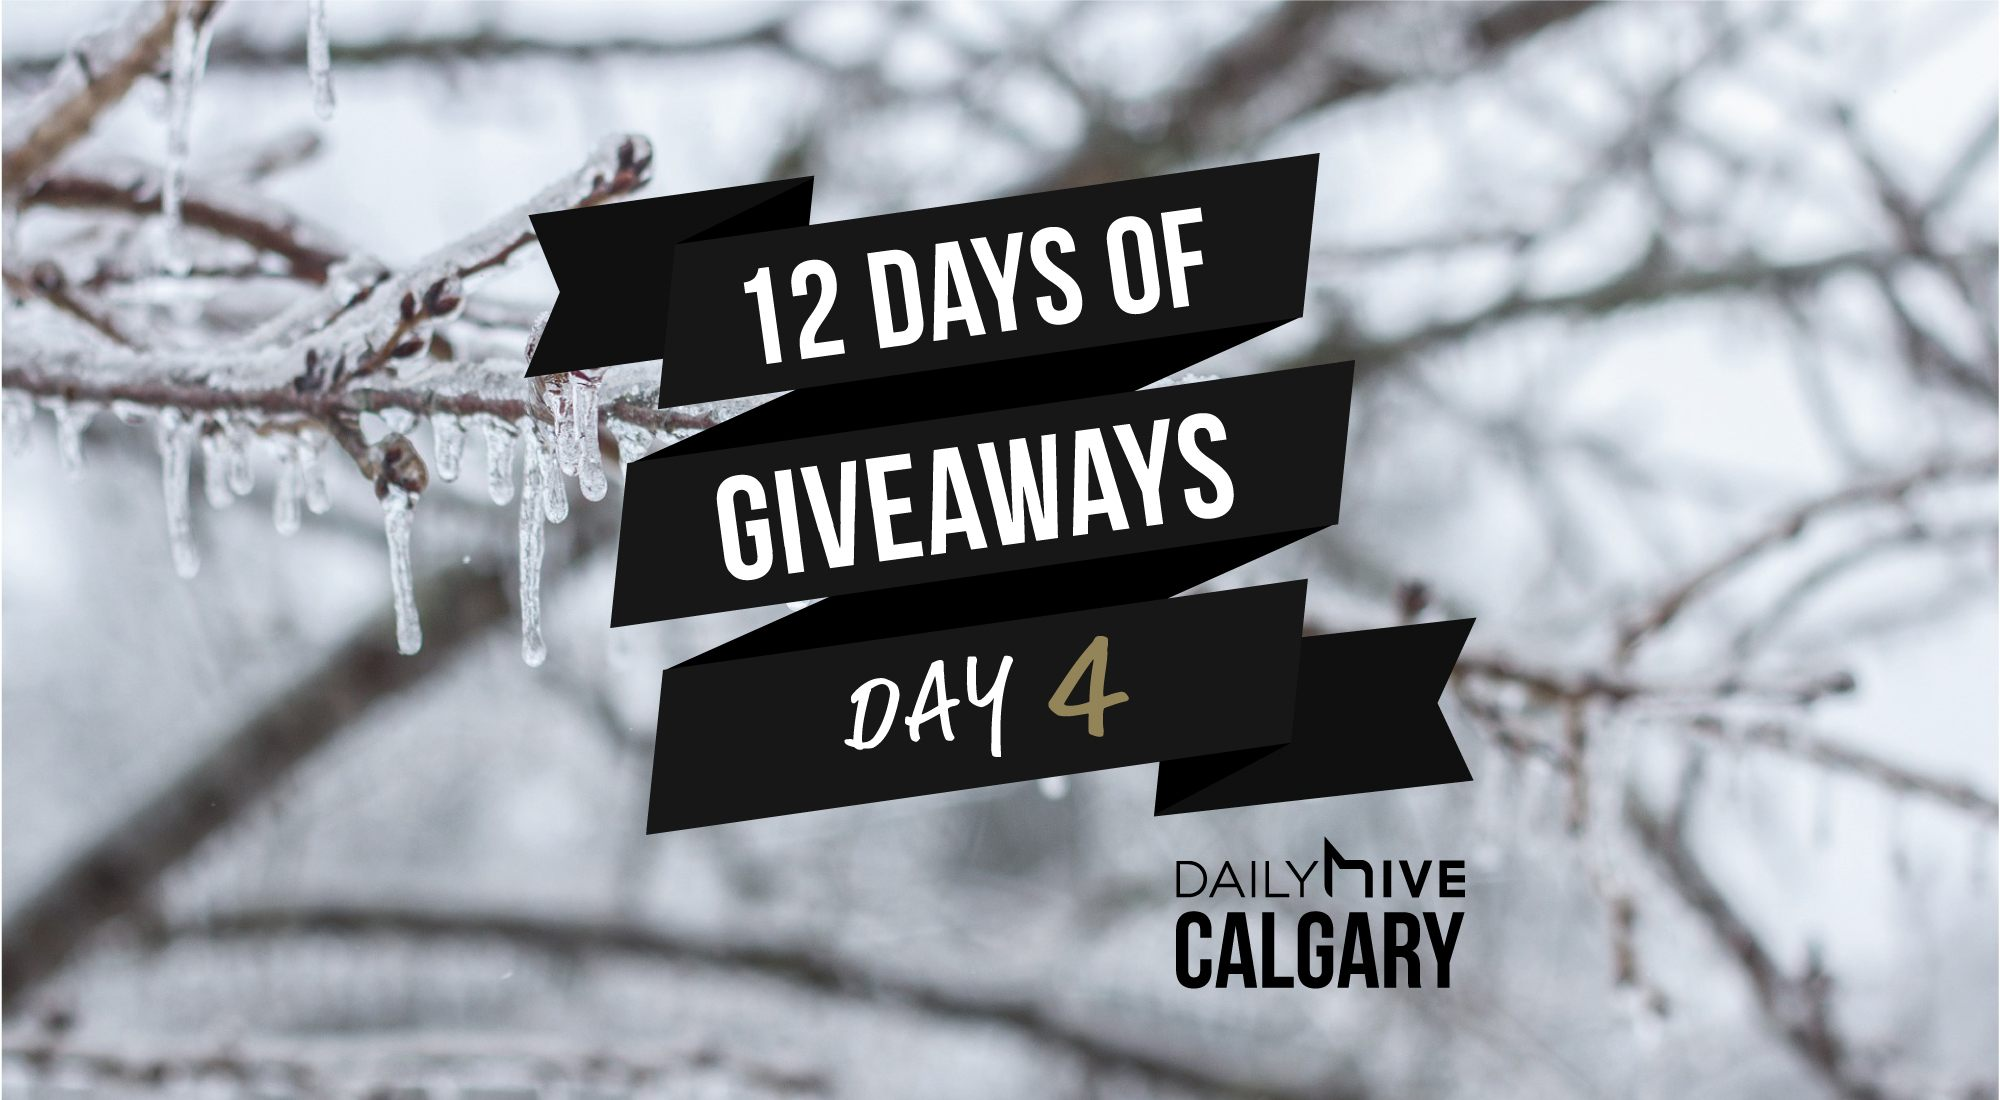 12 days of giveaways calgary 4